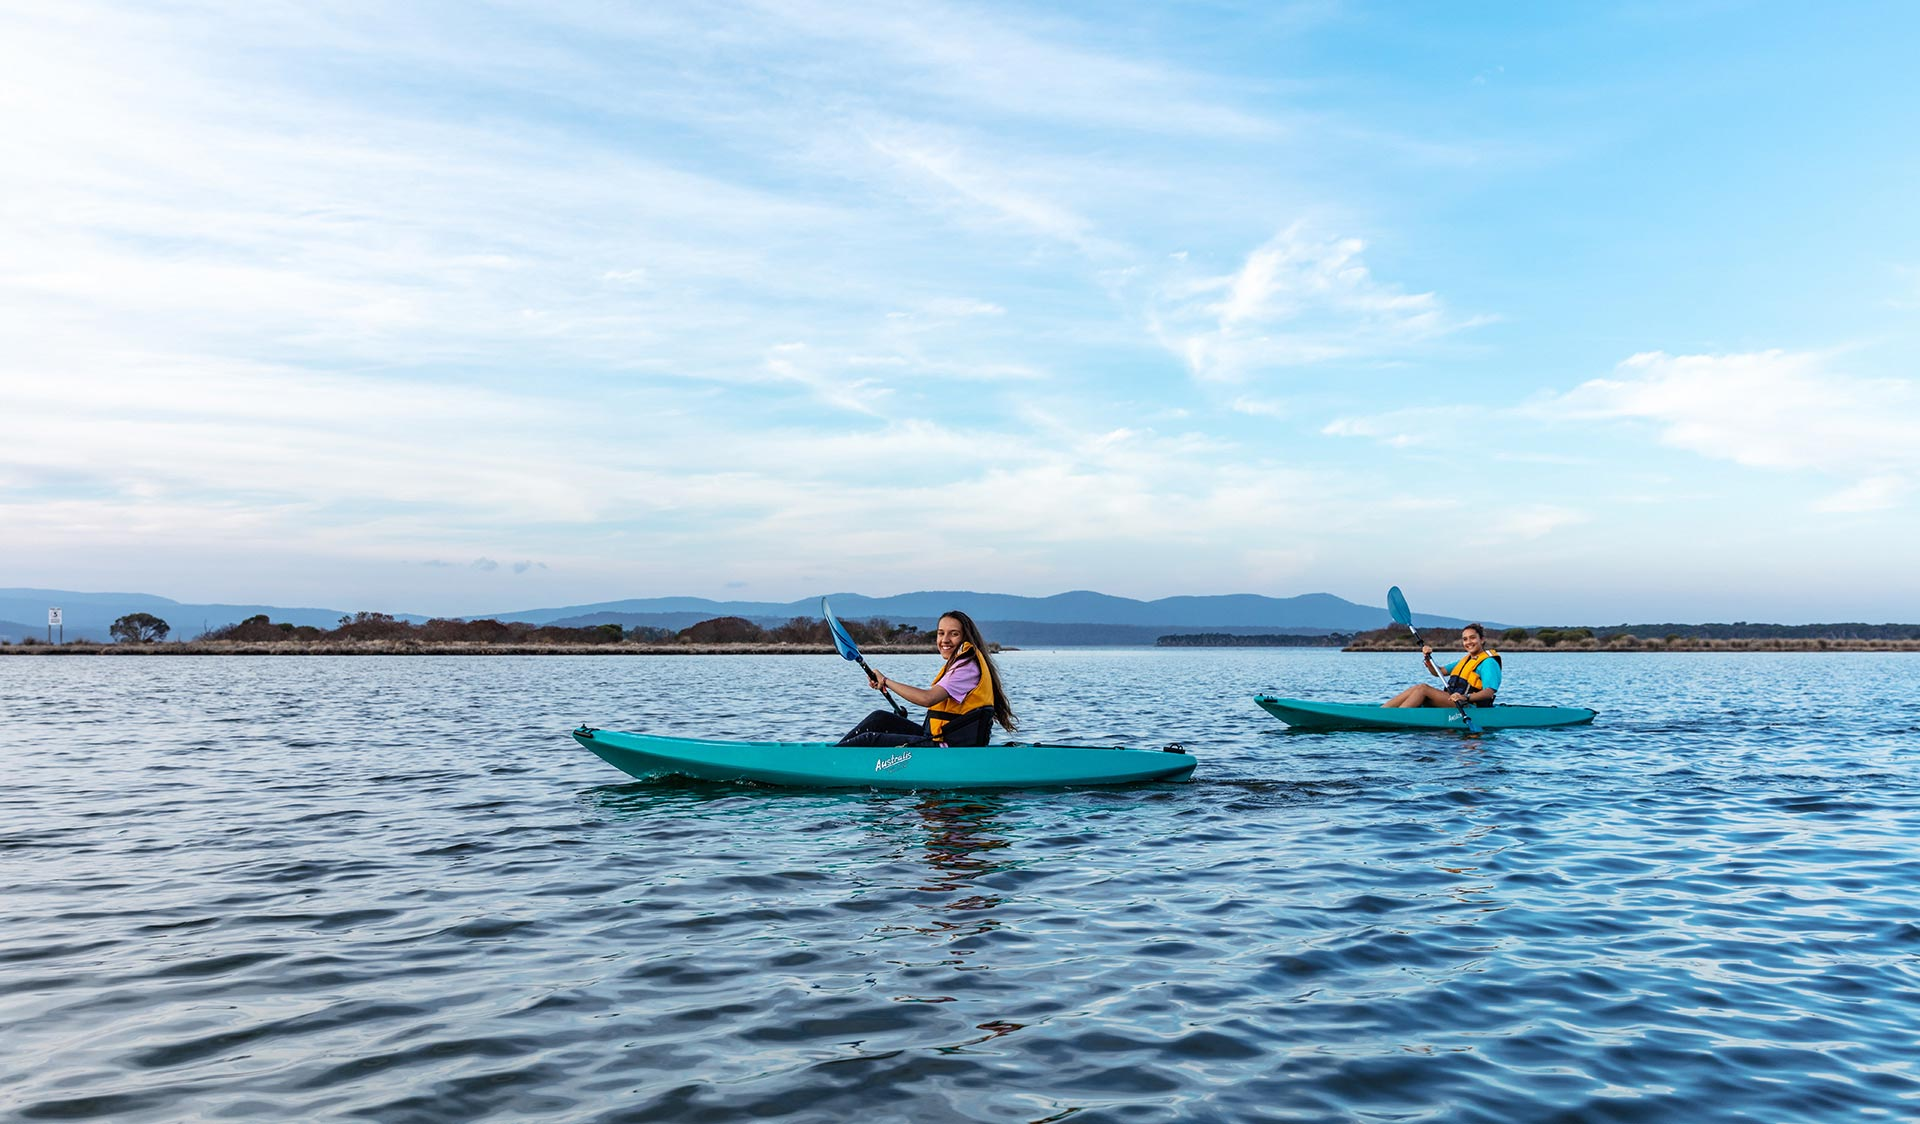 Two teenage girls kayaking on Mallacoota Inlet with mountains in the background.